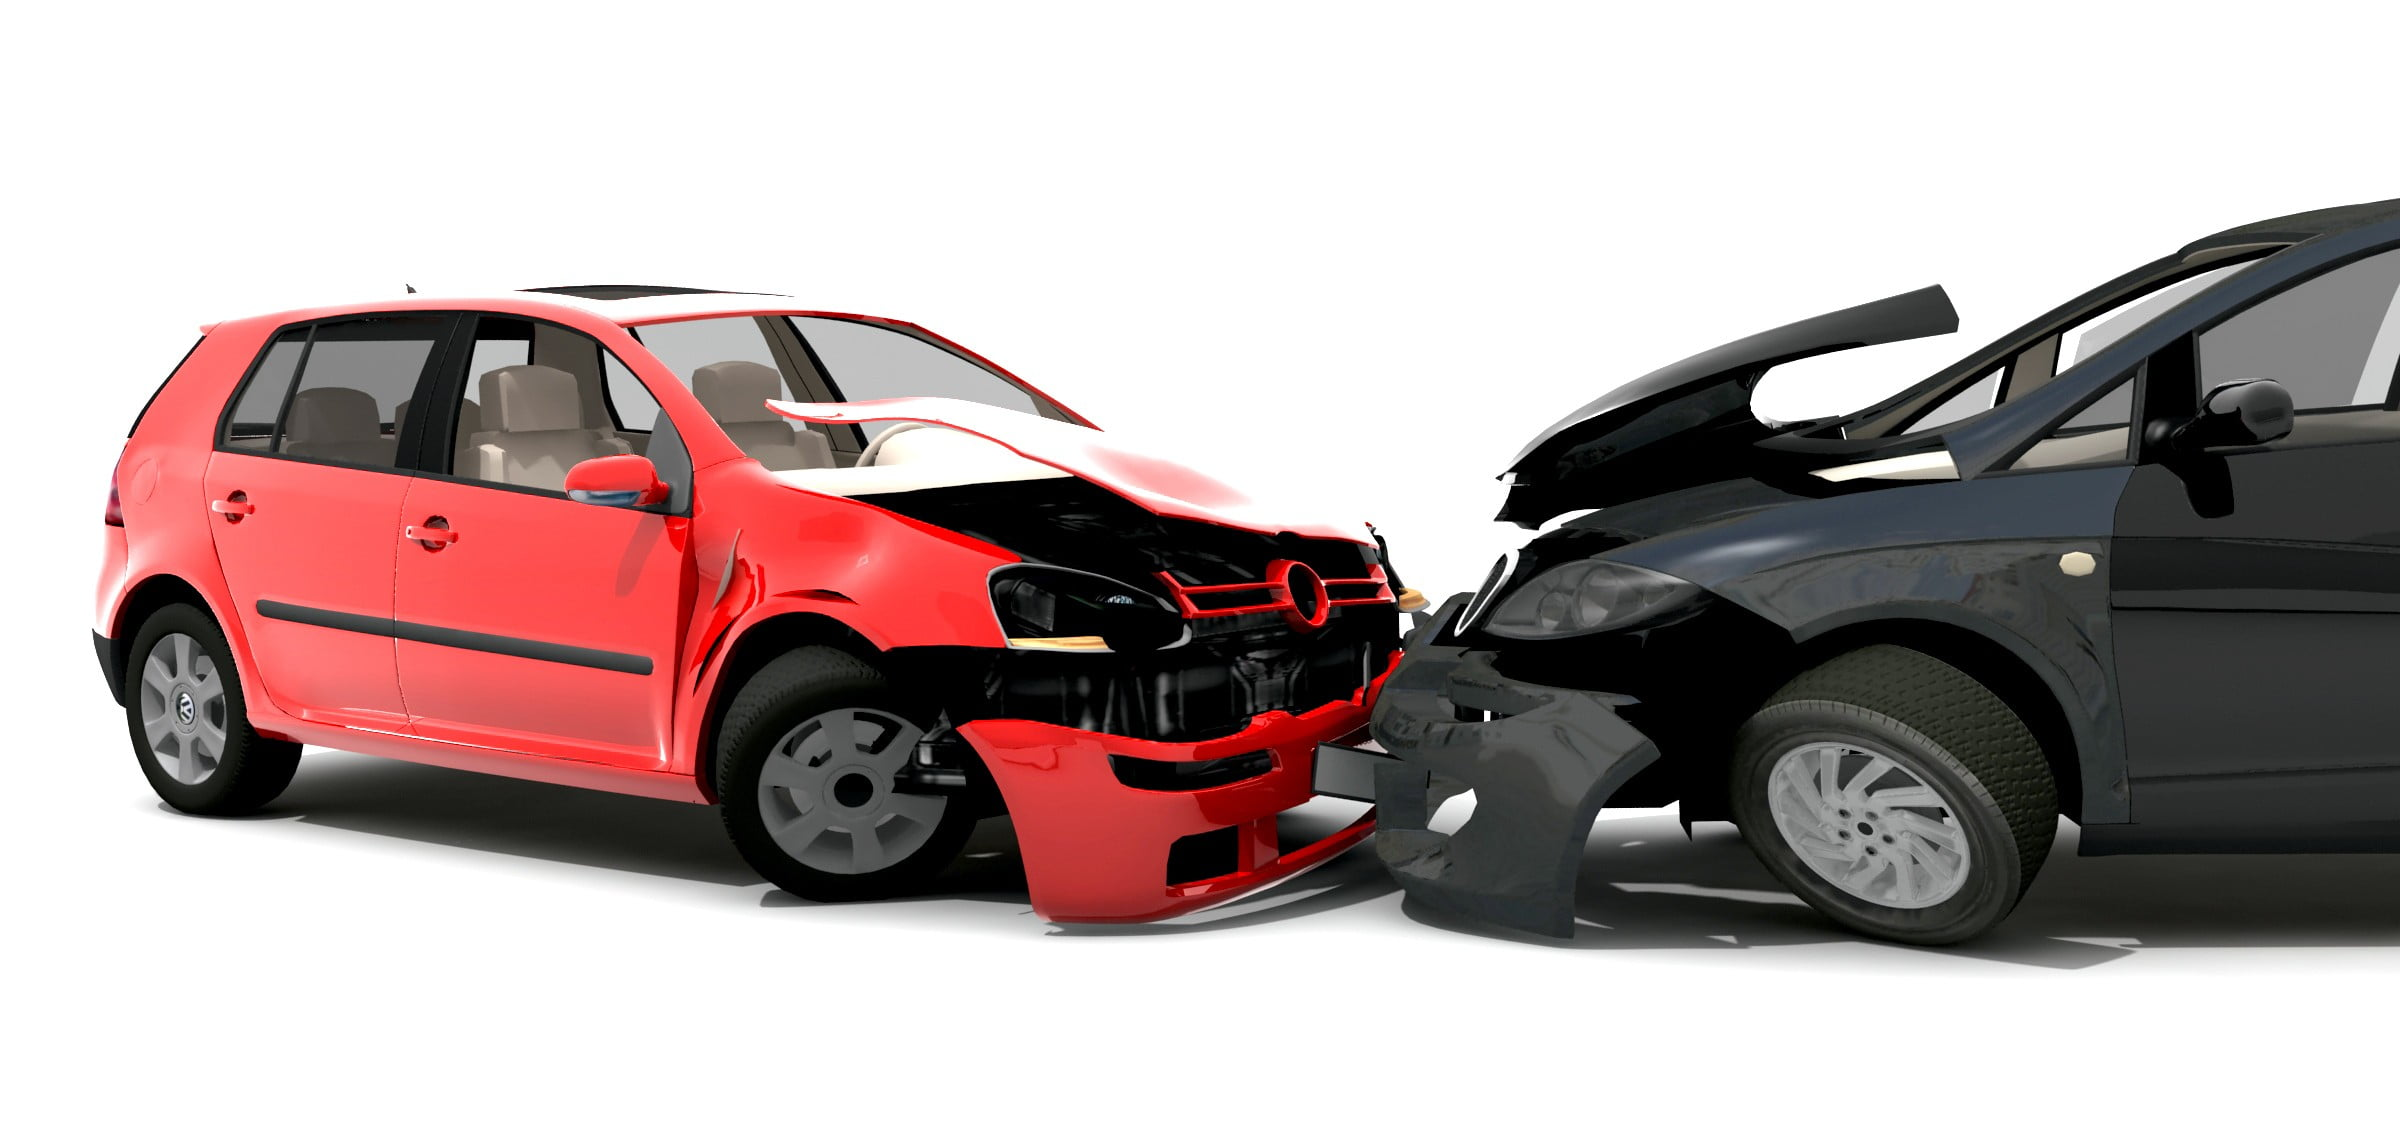 bigstock-Car-accident-16847477-e1348084214459.jpg (2400×1128)